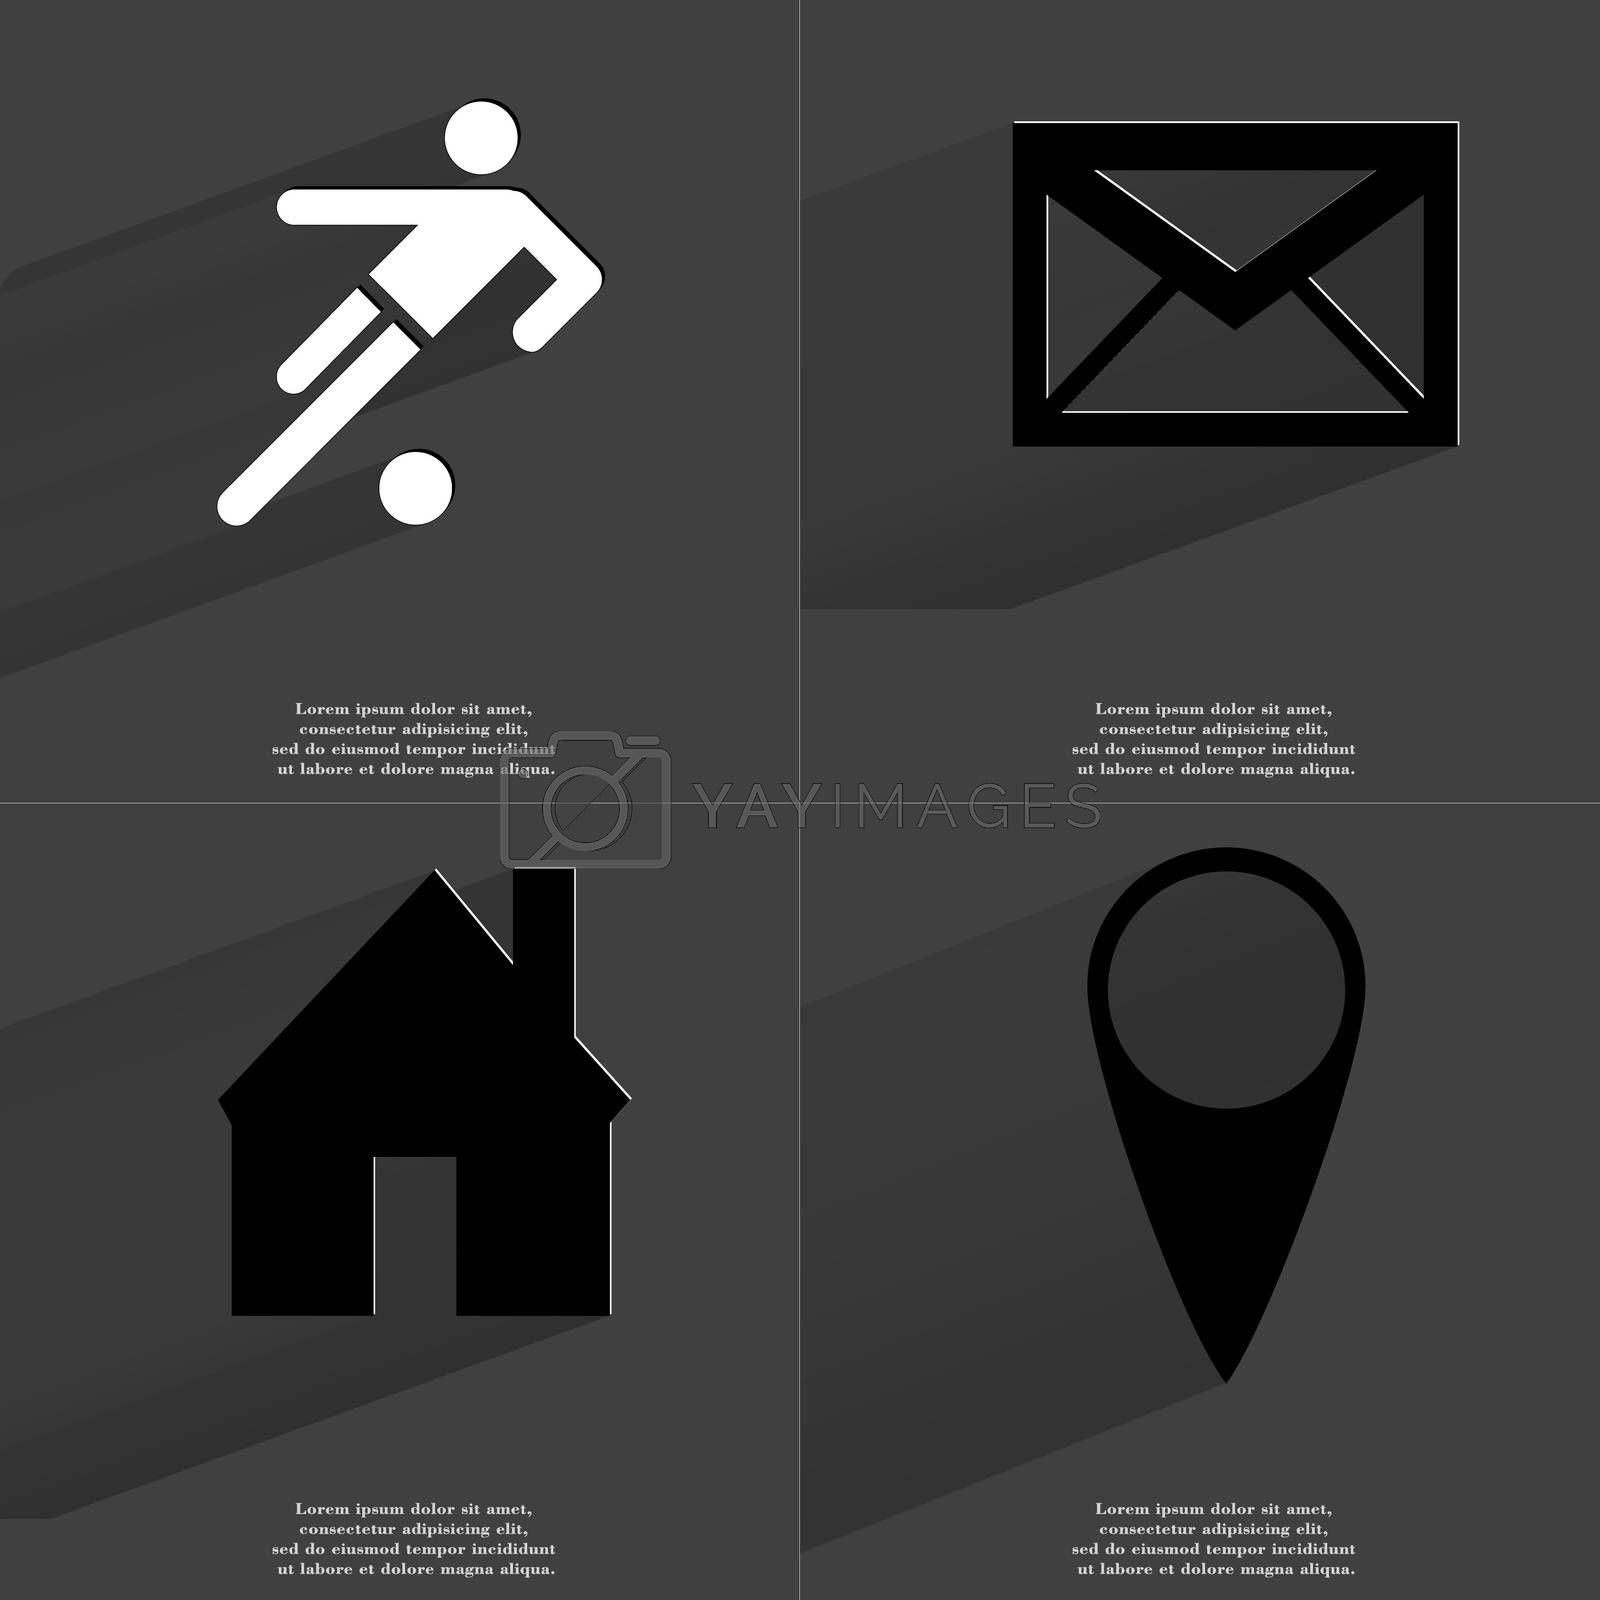 Royalty free image of Silhouette of football player, Message, House, Checkpoint. Symbols with long shadow. Flat design by serhii_lohvyniuk